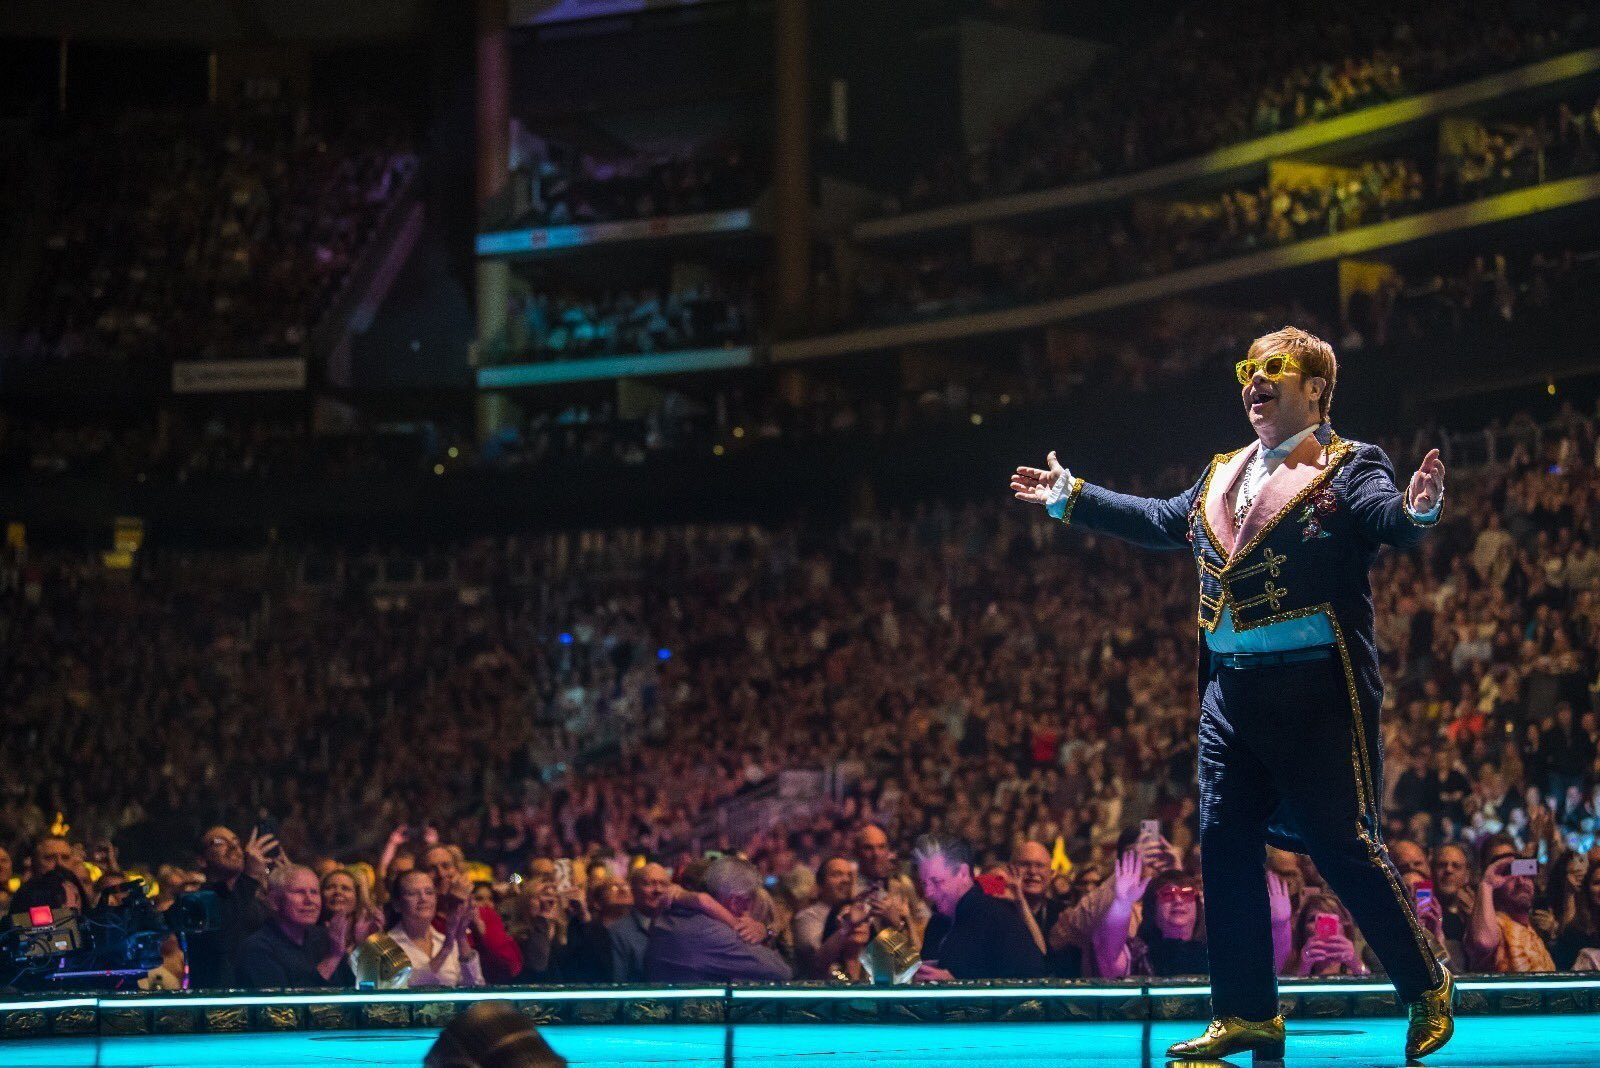 Elton John performs at Gila River Arena in Glendale, AZ on January 26, 2019. Photo courtesy of the artist.